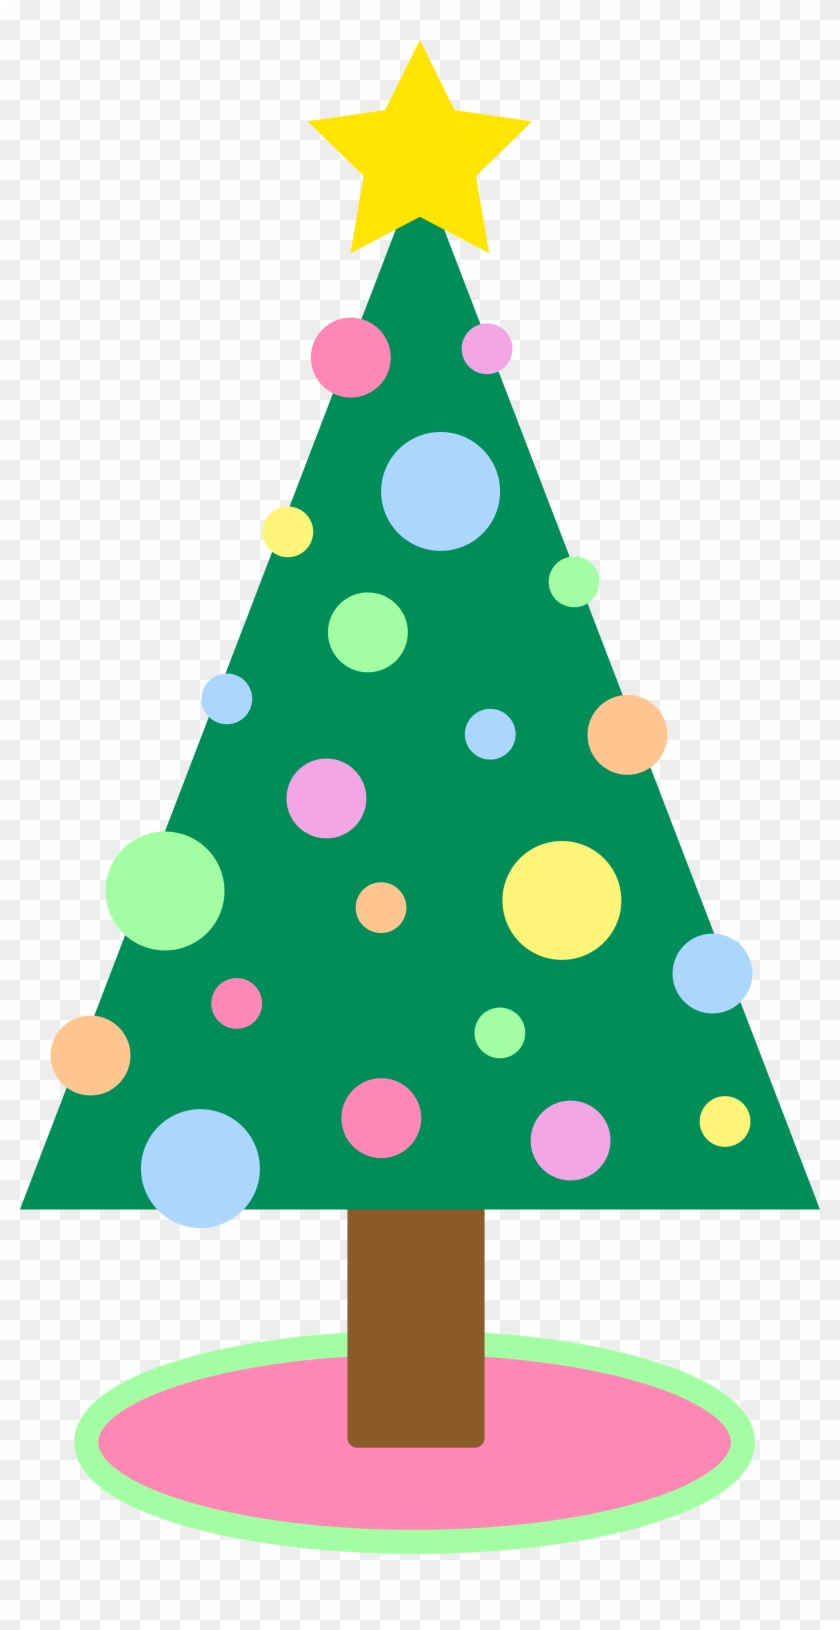 Clip Art Holiday Tree Free Clipart Cliparts For You Cute Christmas Tree Cartoon Free Transparent Png Clipart Images Download